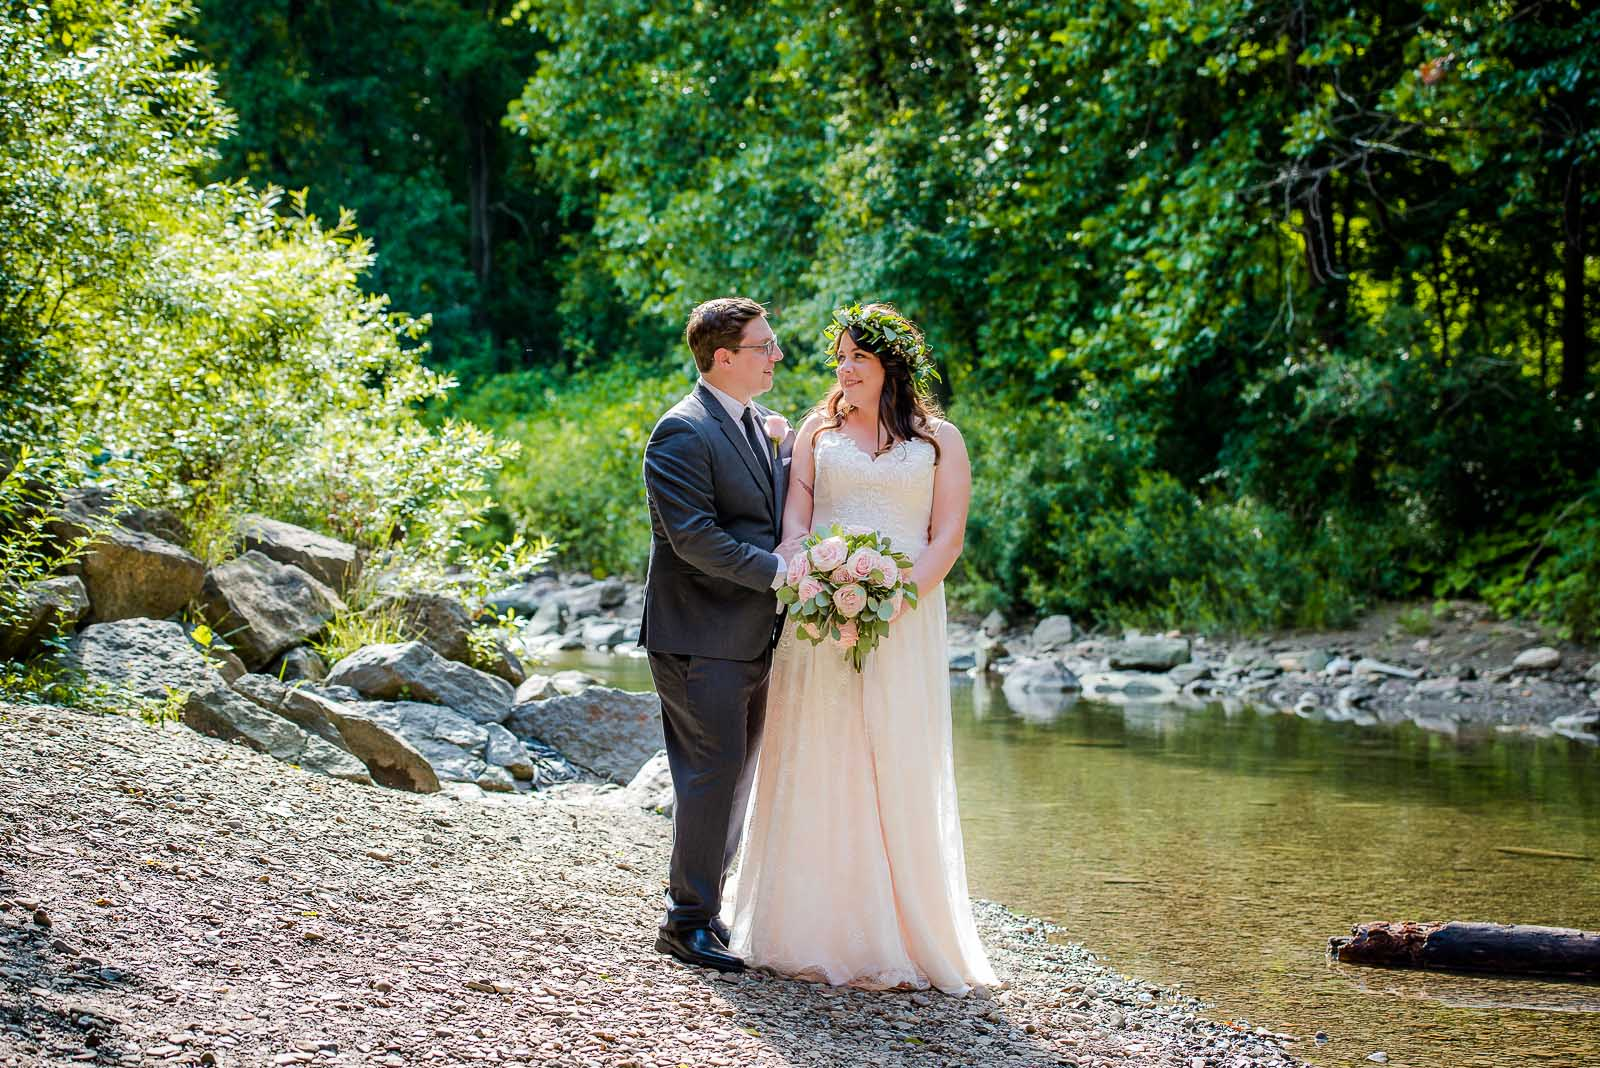 Eric_and_Christy_Photography_Blog_Wedding_Keara&Andy-47